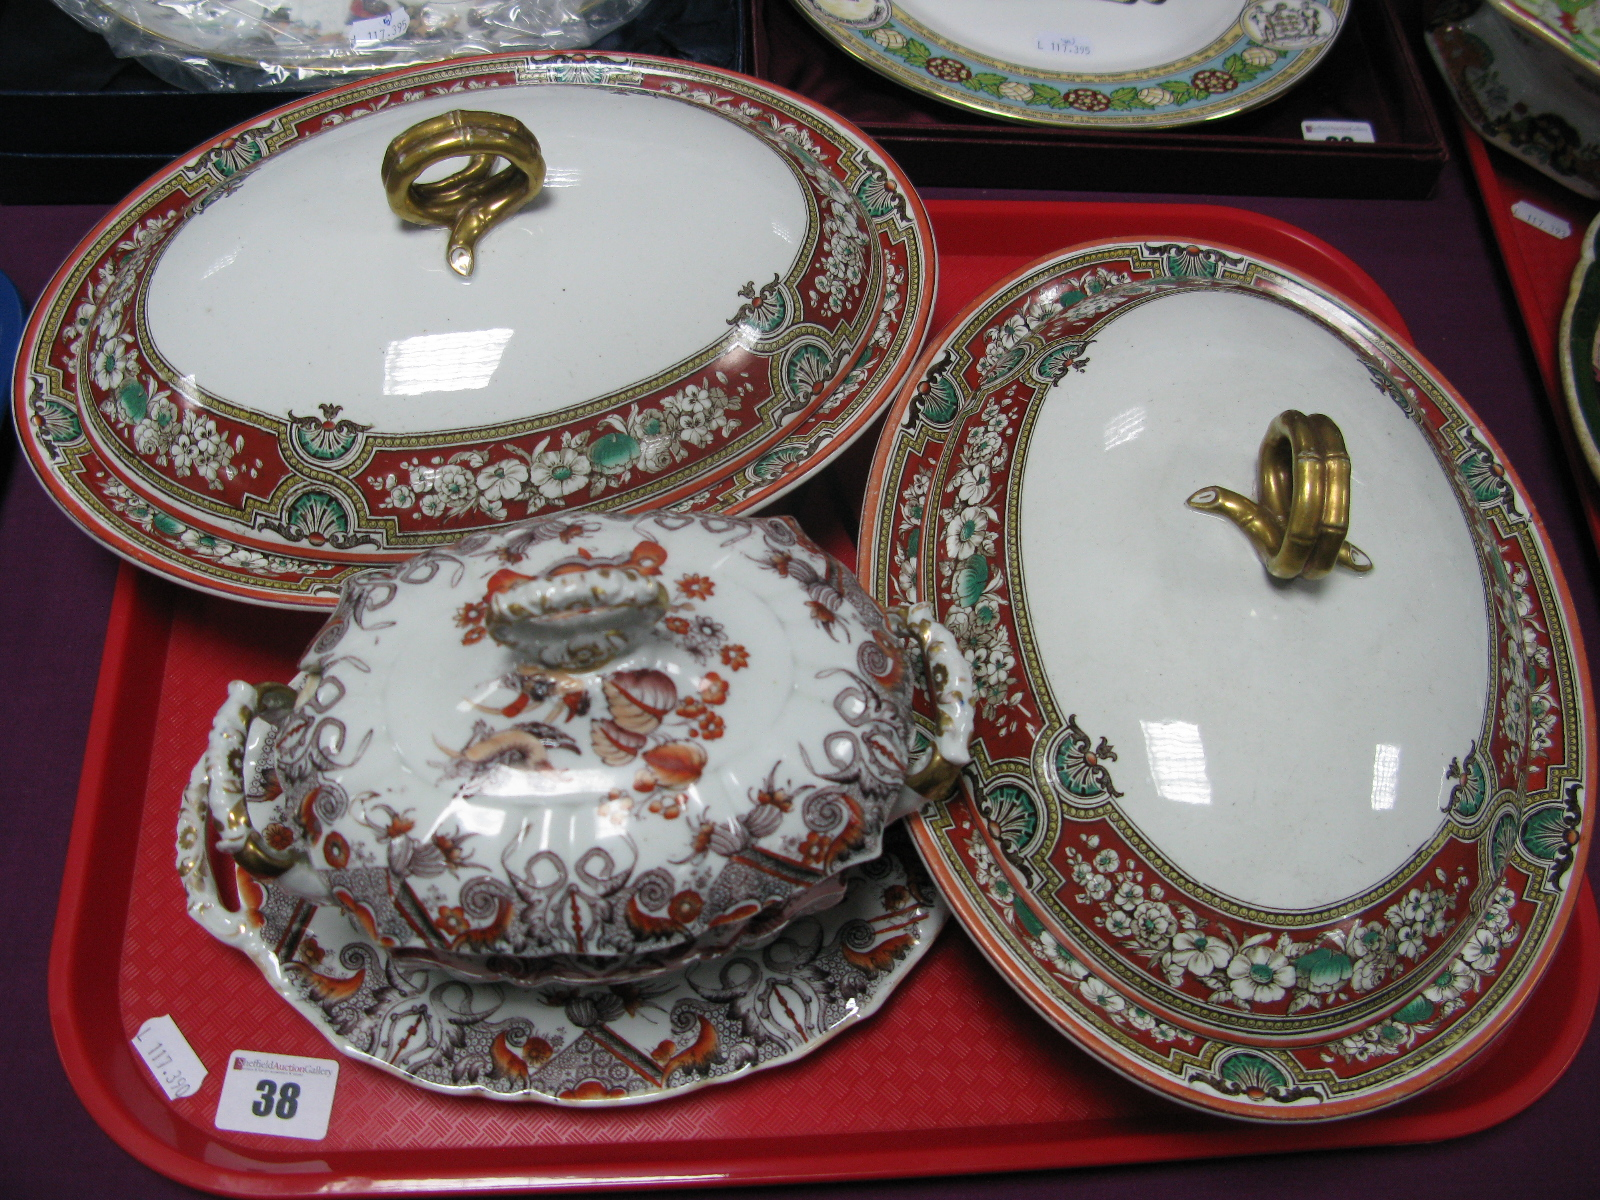 Lot 38 - A Pair of XIX Century Ashworth Ironstone Oval Tureens and Covers; a Mason's sauce tureen, cover